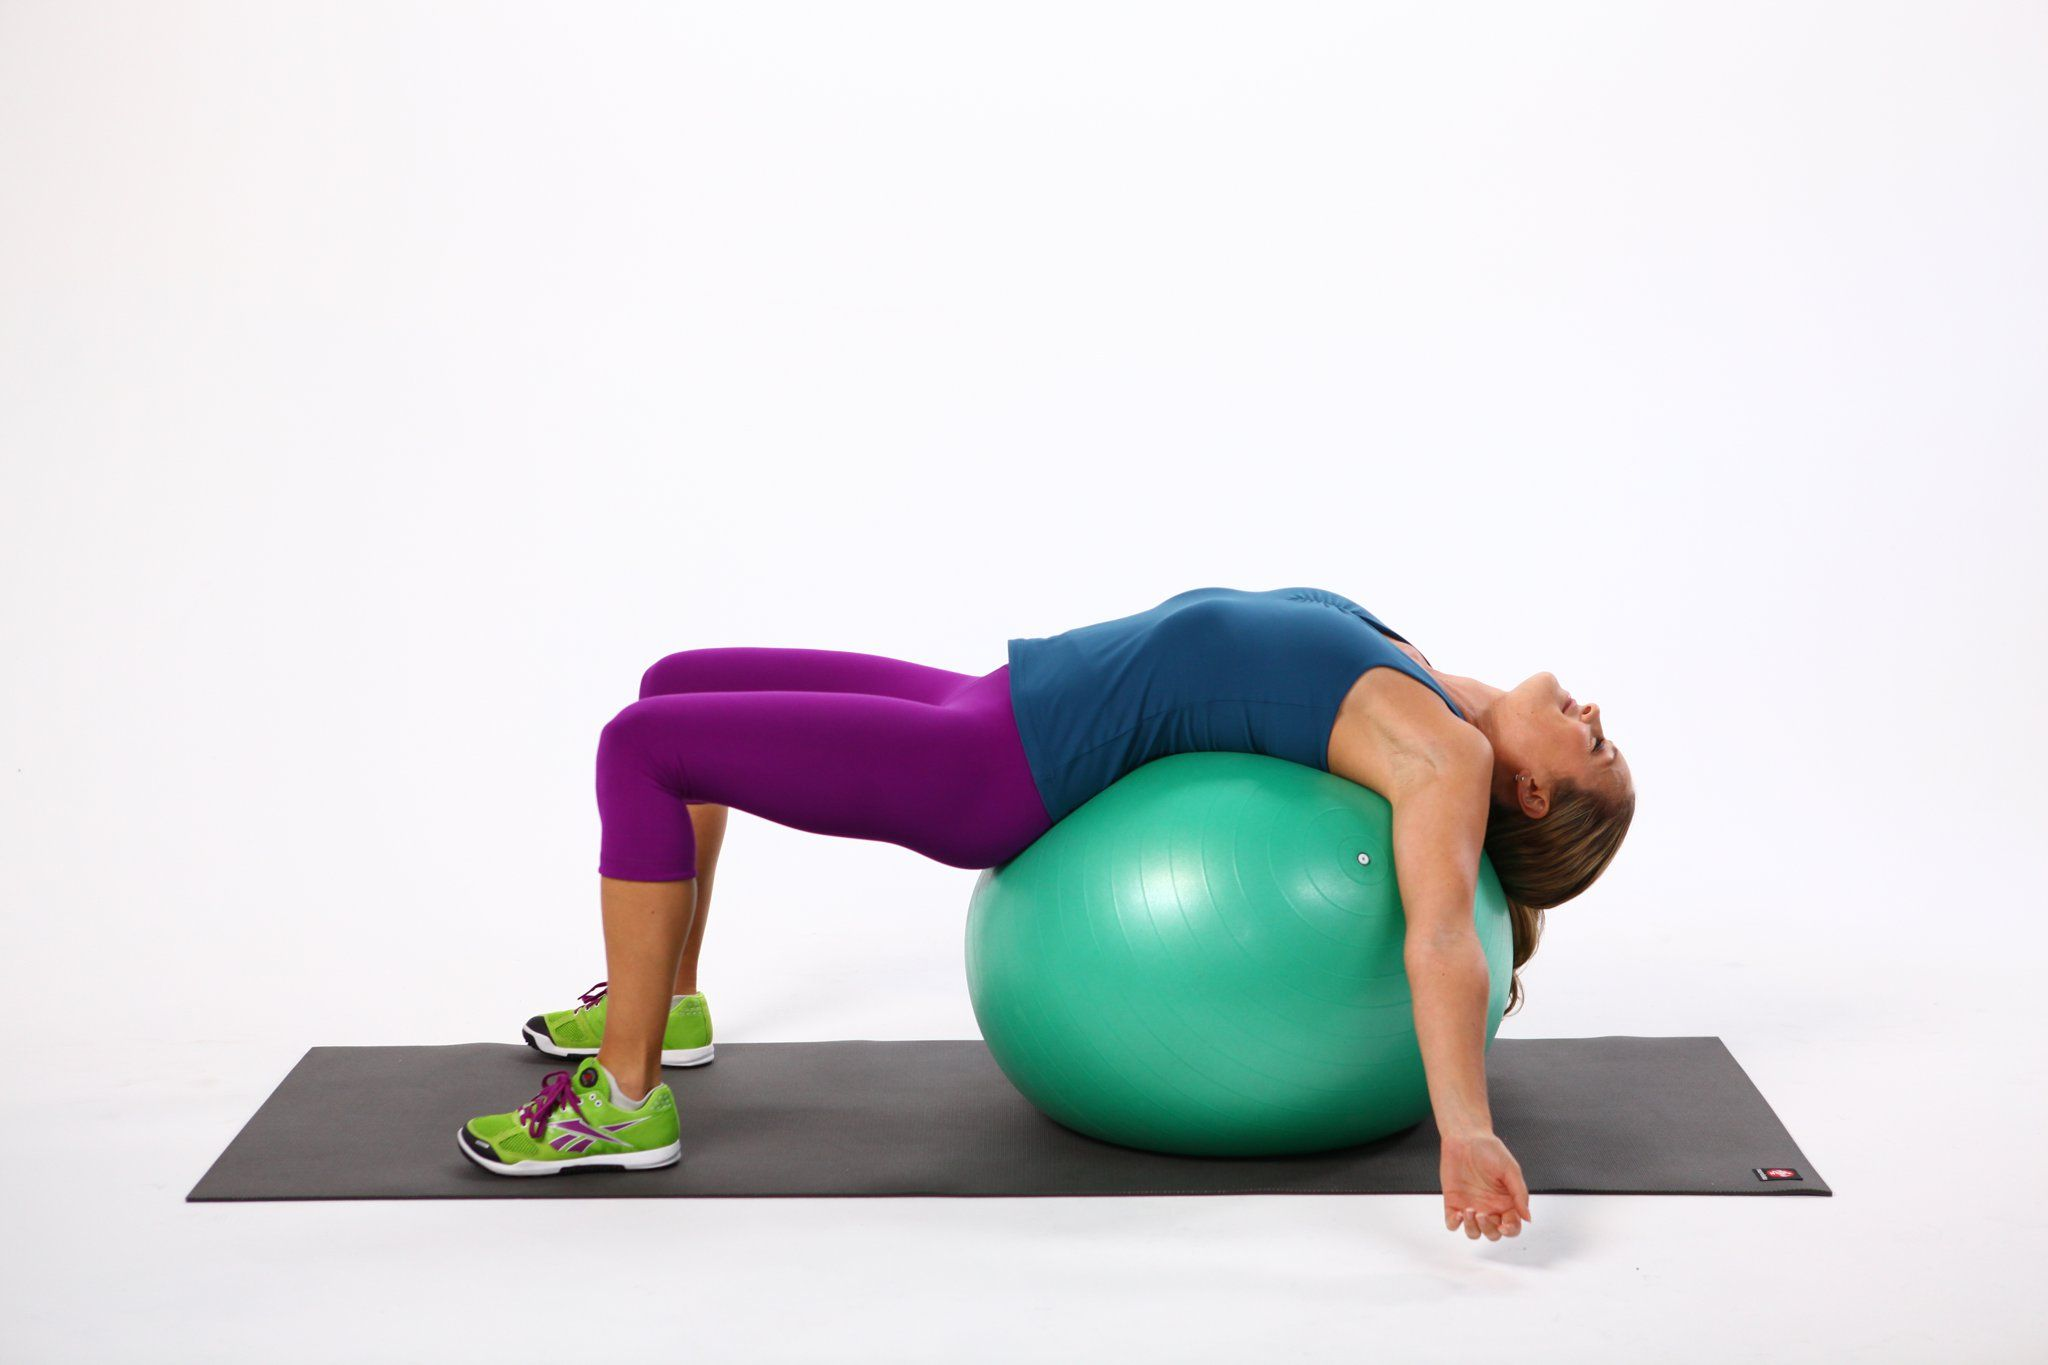 d241bb2ff9742b40b0bcdf5276131293 - How Do I Know What Size Stability Ball To Get